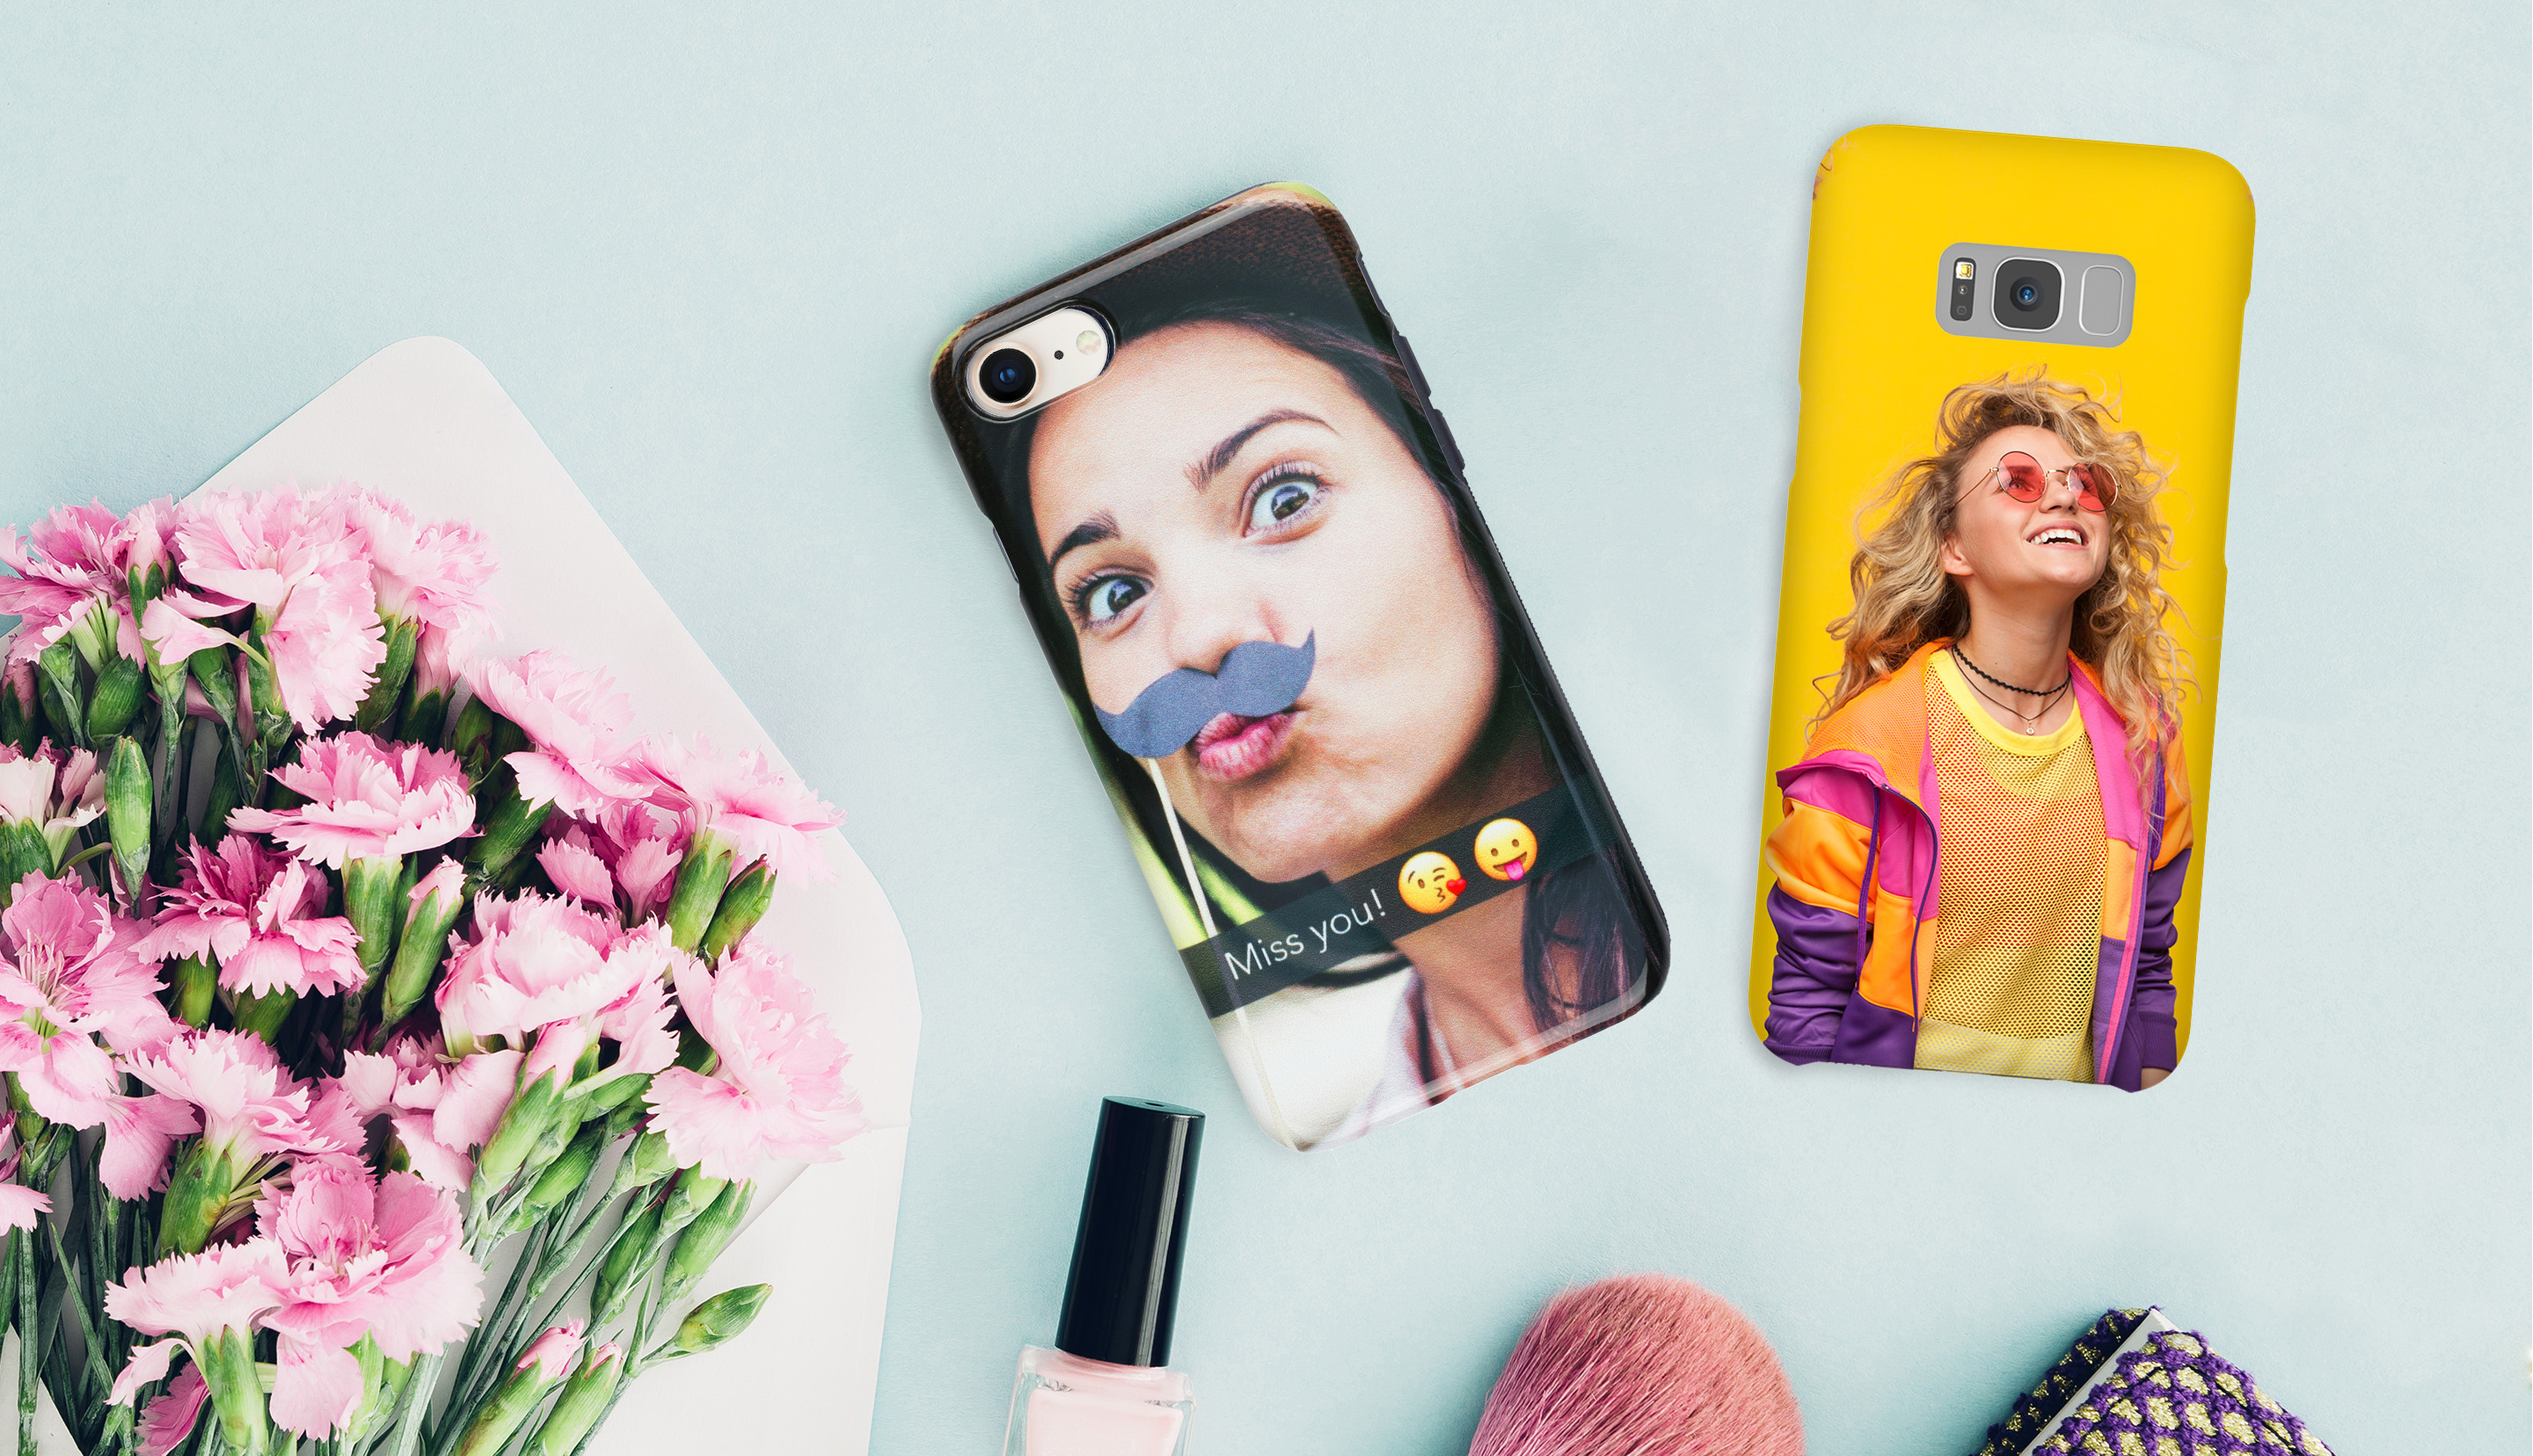 2 phone cases with selfies laying on blue tabletop